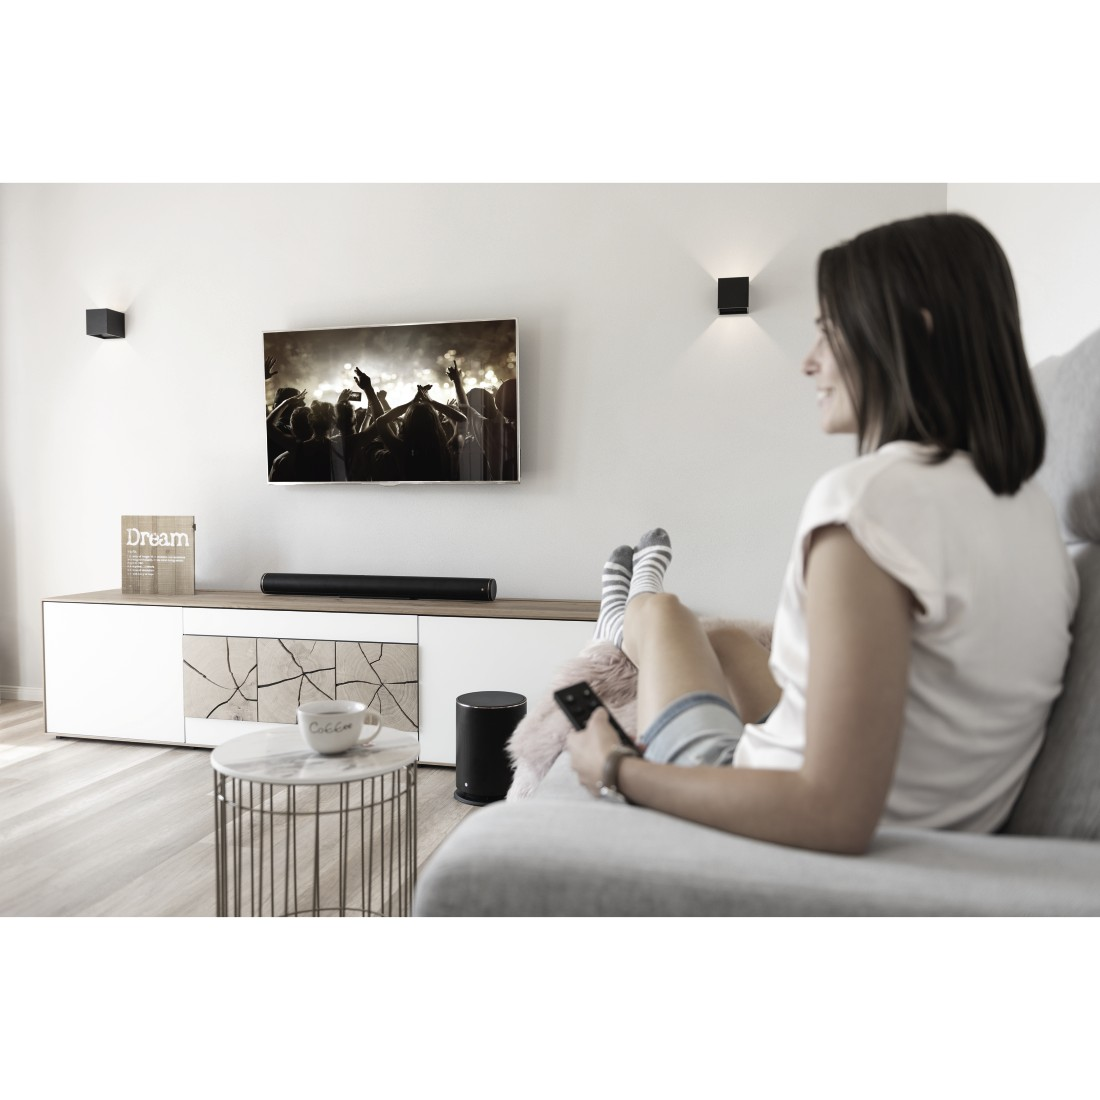 awx3 Druckfähige Anwendung 3 - Hama, Smart-TV-Soundbar 2.1 SIRIUM4000ABT, Wireless Subwoofer/Alexa/Bluetooth